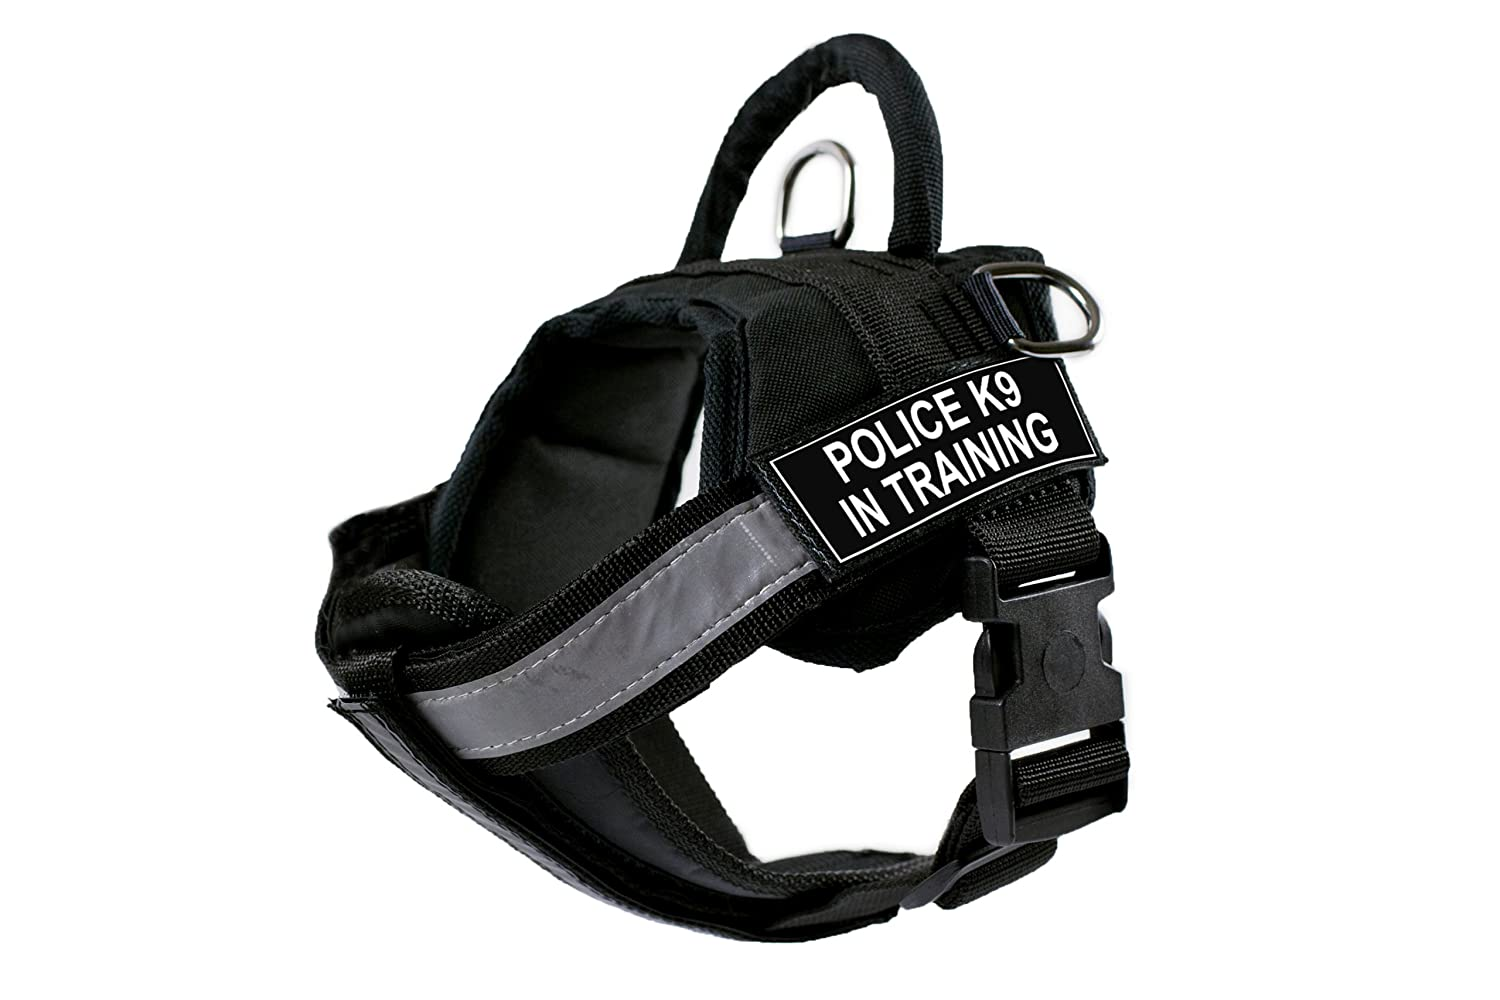 DT Works Harness with Padded Reflective Chest Straps, Police K9 in Training, Black, X-Small, Fits Girth Size  21-Inch to 26-Inch